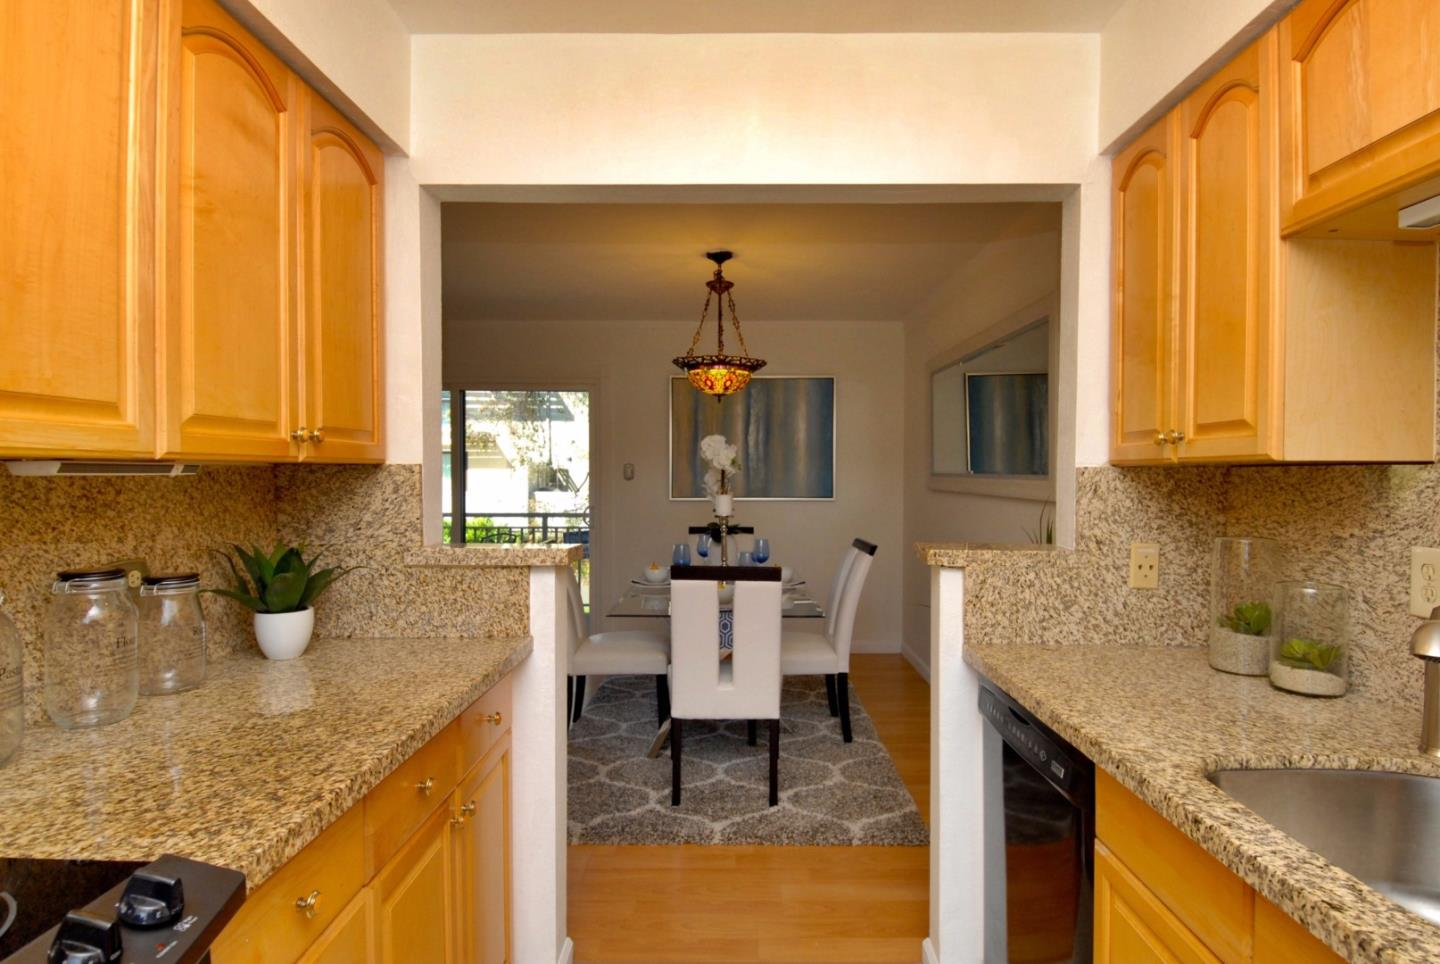 Additional photo for property listing at 3216 Admiralty Lane  Foster City, カリフォルニア 94404 アメリカ合衆国